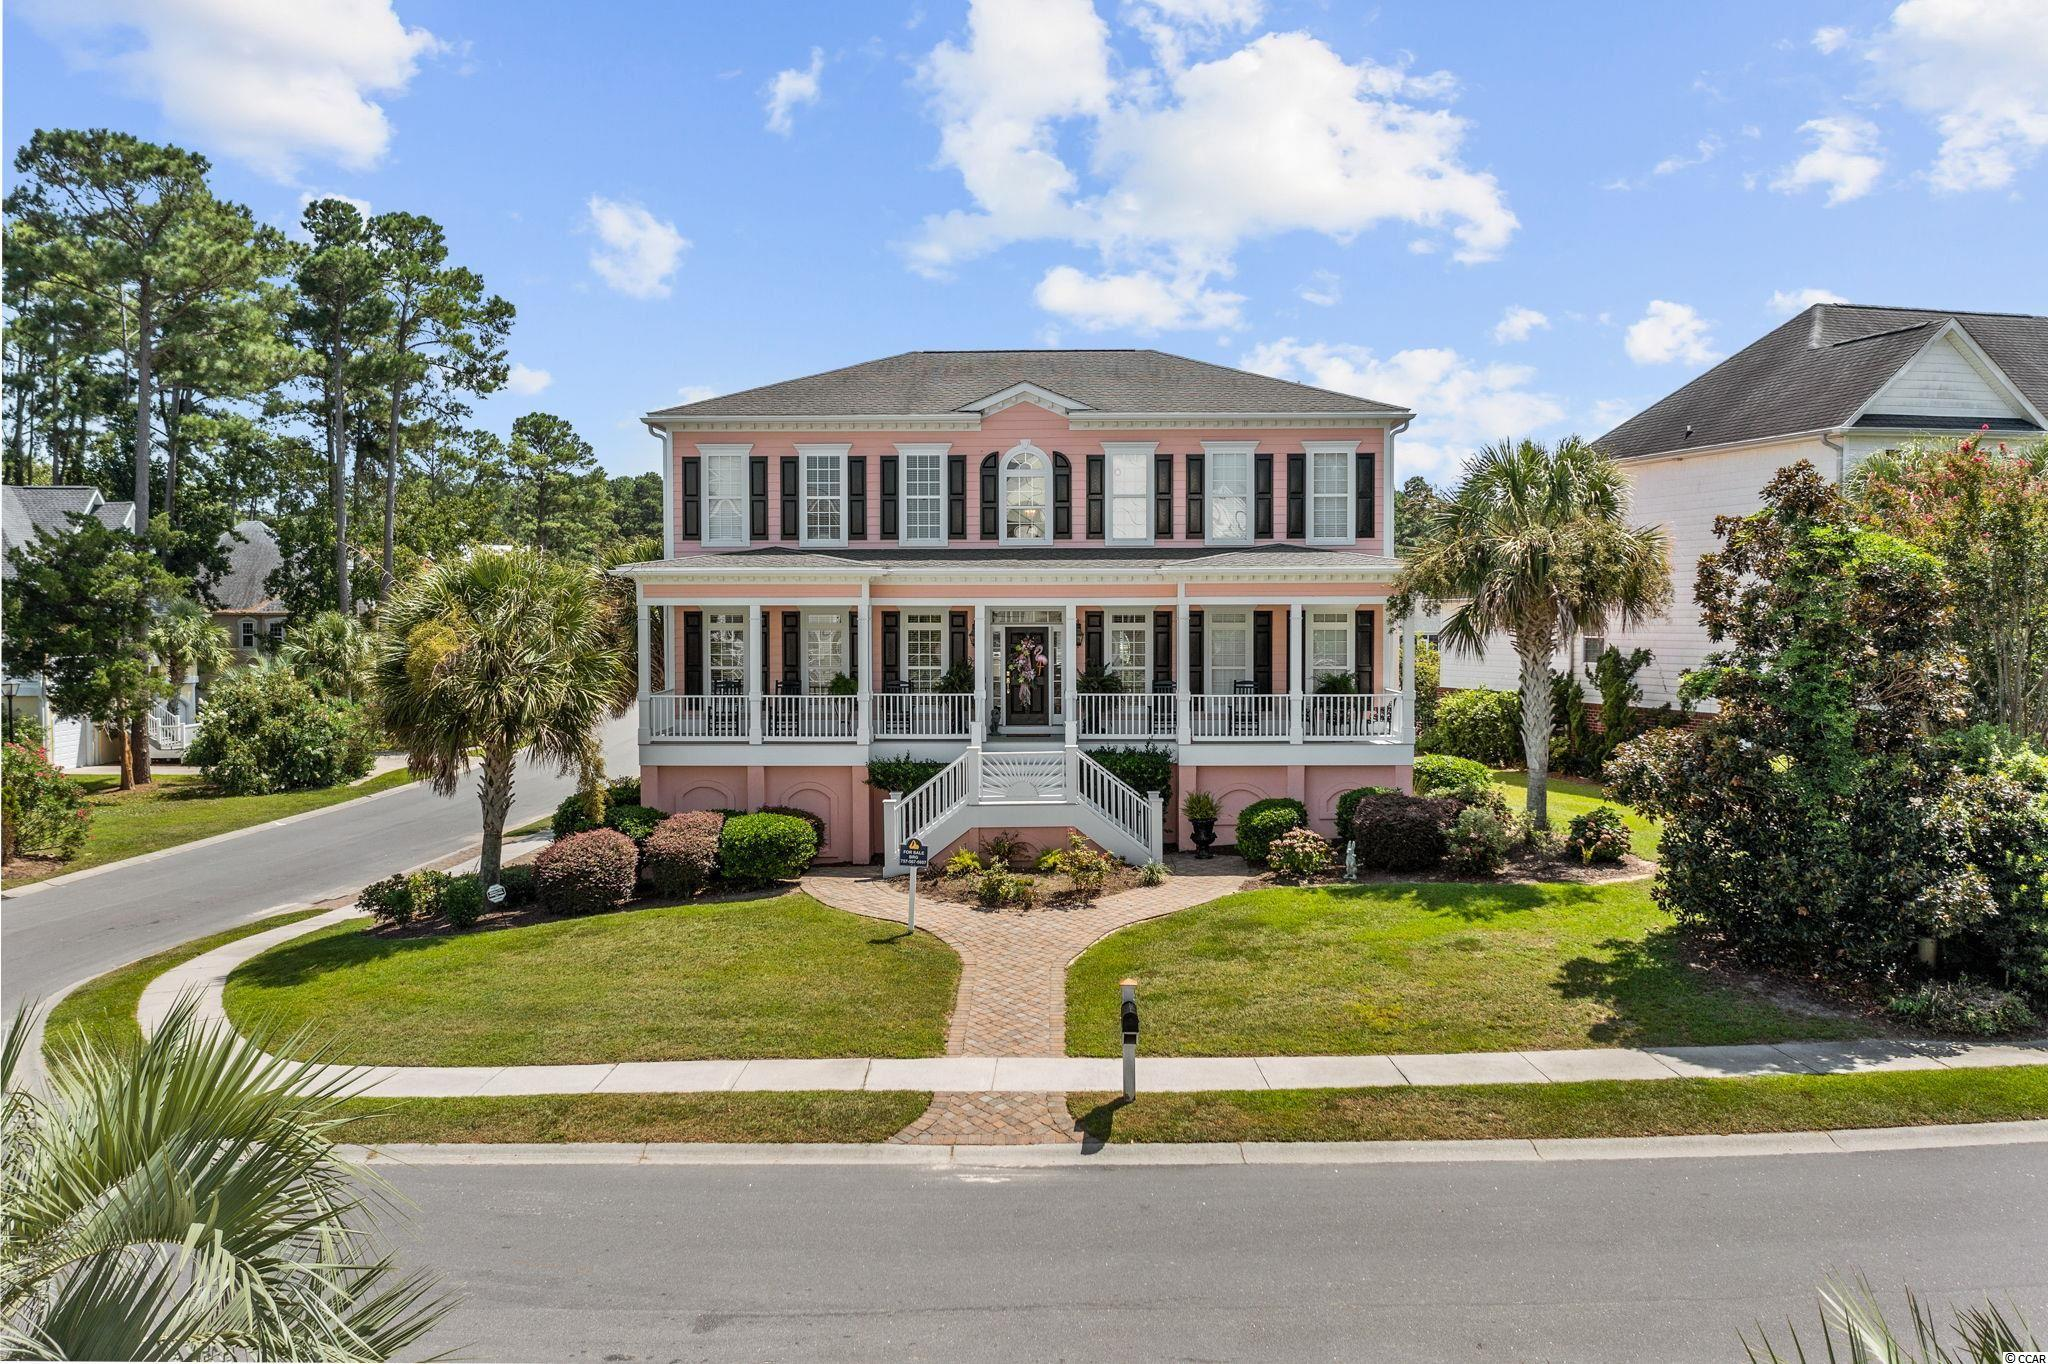 """Stunning low country styled home located in the prestigious Intracoastal Waterway community of Sunset Harbour.  This traditional charmer sits just across the street from the waterway and offers owners the best of the coastal lifestyle.  Full waterway view from the front porch, enjoy spending the evening watching the boats go by.  A large front porch welcomes guests and invites you to sit and stay a while.  Inside you will find soaring double height ceilings in the foyer and living room with an open staircase to the second floor.  This home is perfect for entertaining with a formal dining room and large chef's kitchen.  The kitchen features ivory custom cabinetry, stainless appliances and granite.  There's plenty of counter space to prepare meals for gatherings or a large family.  A breakfast nook and a spacious sitting area with a sun room feel are all open to the heart of the kitchen; perfect for a """"gathering"""" spot. The custom details and finishes of this property are plentiful.  Dark cherry stained hardwood plank flooring, extensive mill work and substantial crown moldings can be found throughout.  Smooth ceilings, recessed lighting, lever door hardware and main floor built in speaker system are other features that should be mentioned.  Freshly painted interior trim and walls in a neutral color pallet.  The home is bright and filled with light.  The living room has a double bank of windows spanning floor to ceiling to create an open feel.  For those chilly nights, a gas log fireplace can set a warm tone in the home.  The main floor owners suite opens onto the rear deck for private relaxation.  The en suite bath is inviting with dual vanities, custom cabinetry and granite counter tops.  Large walk in closet with separate water closet, walk in shower and large garden tub finish off the space.  Tile flooring in a neutral ivory give the space a bright feel.  The master suite is painted in a soothing and cool blue tone that have a decidedly spa like feel.  Upstairs, yo"""